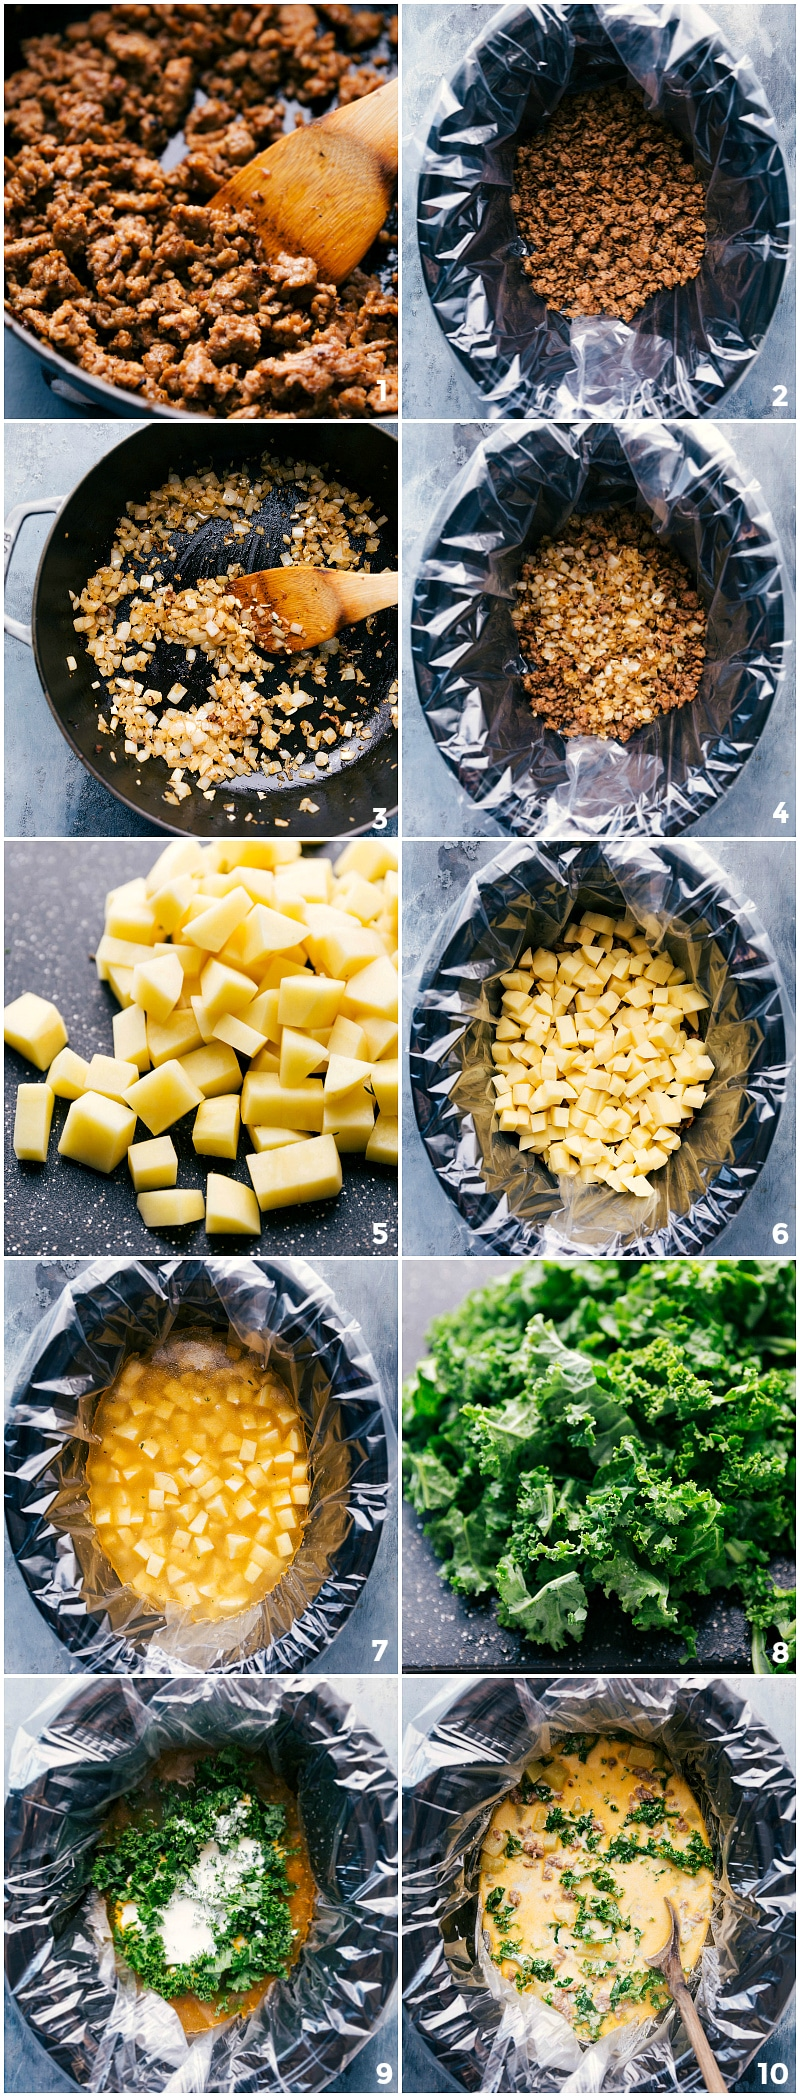 Process shots of this zuppa toscana soup being made showing the meat being cooked, potatoes being added, and kale being added and mixed together